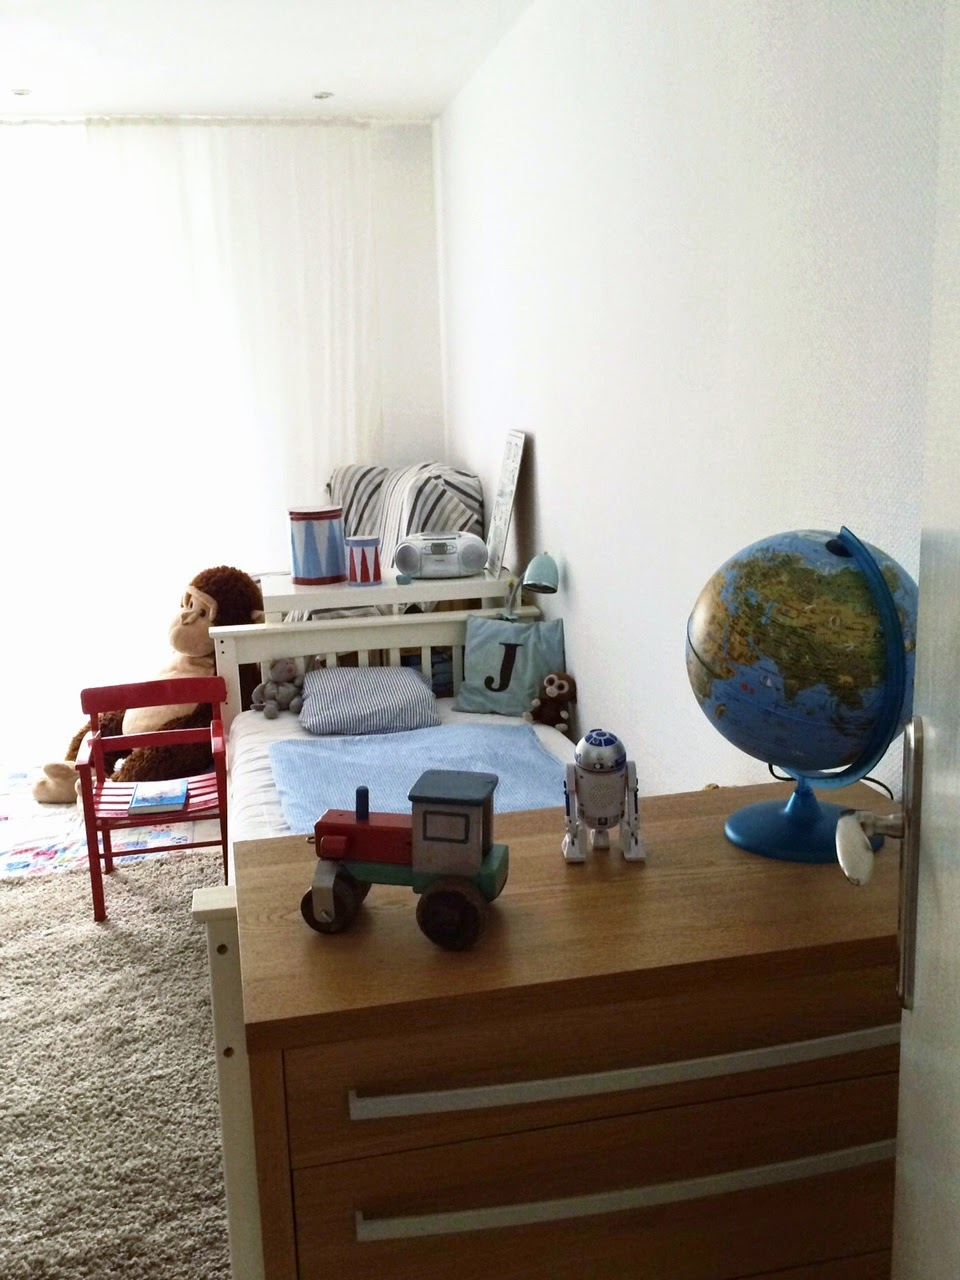 jungenzimmer einrichten - decorating a boys room